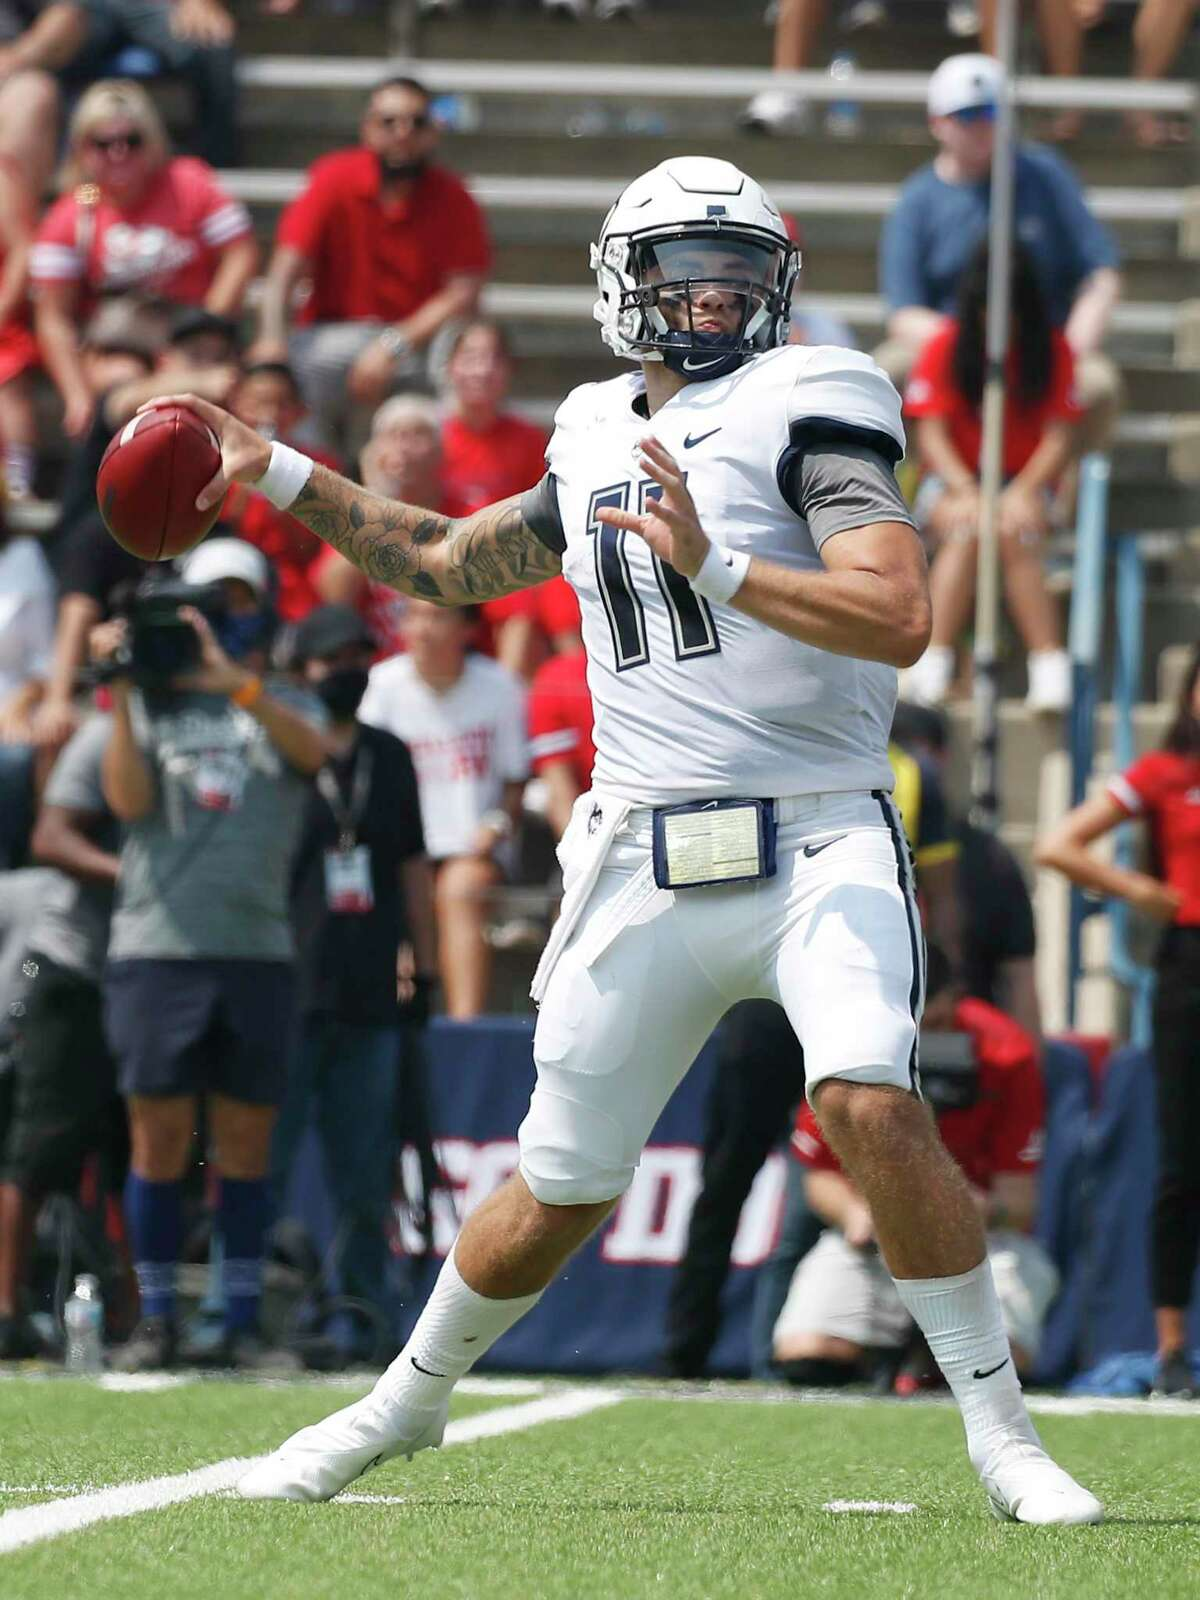 UConn quarterback Jack Zergiotis drops back to pass against Fresno State during the first half of an NCAA college football game in Fresno, Calif., Saturday, Aug. 28, 2021.